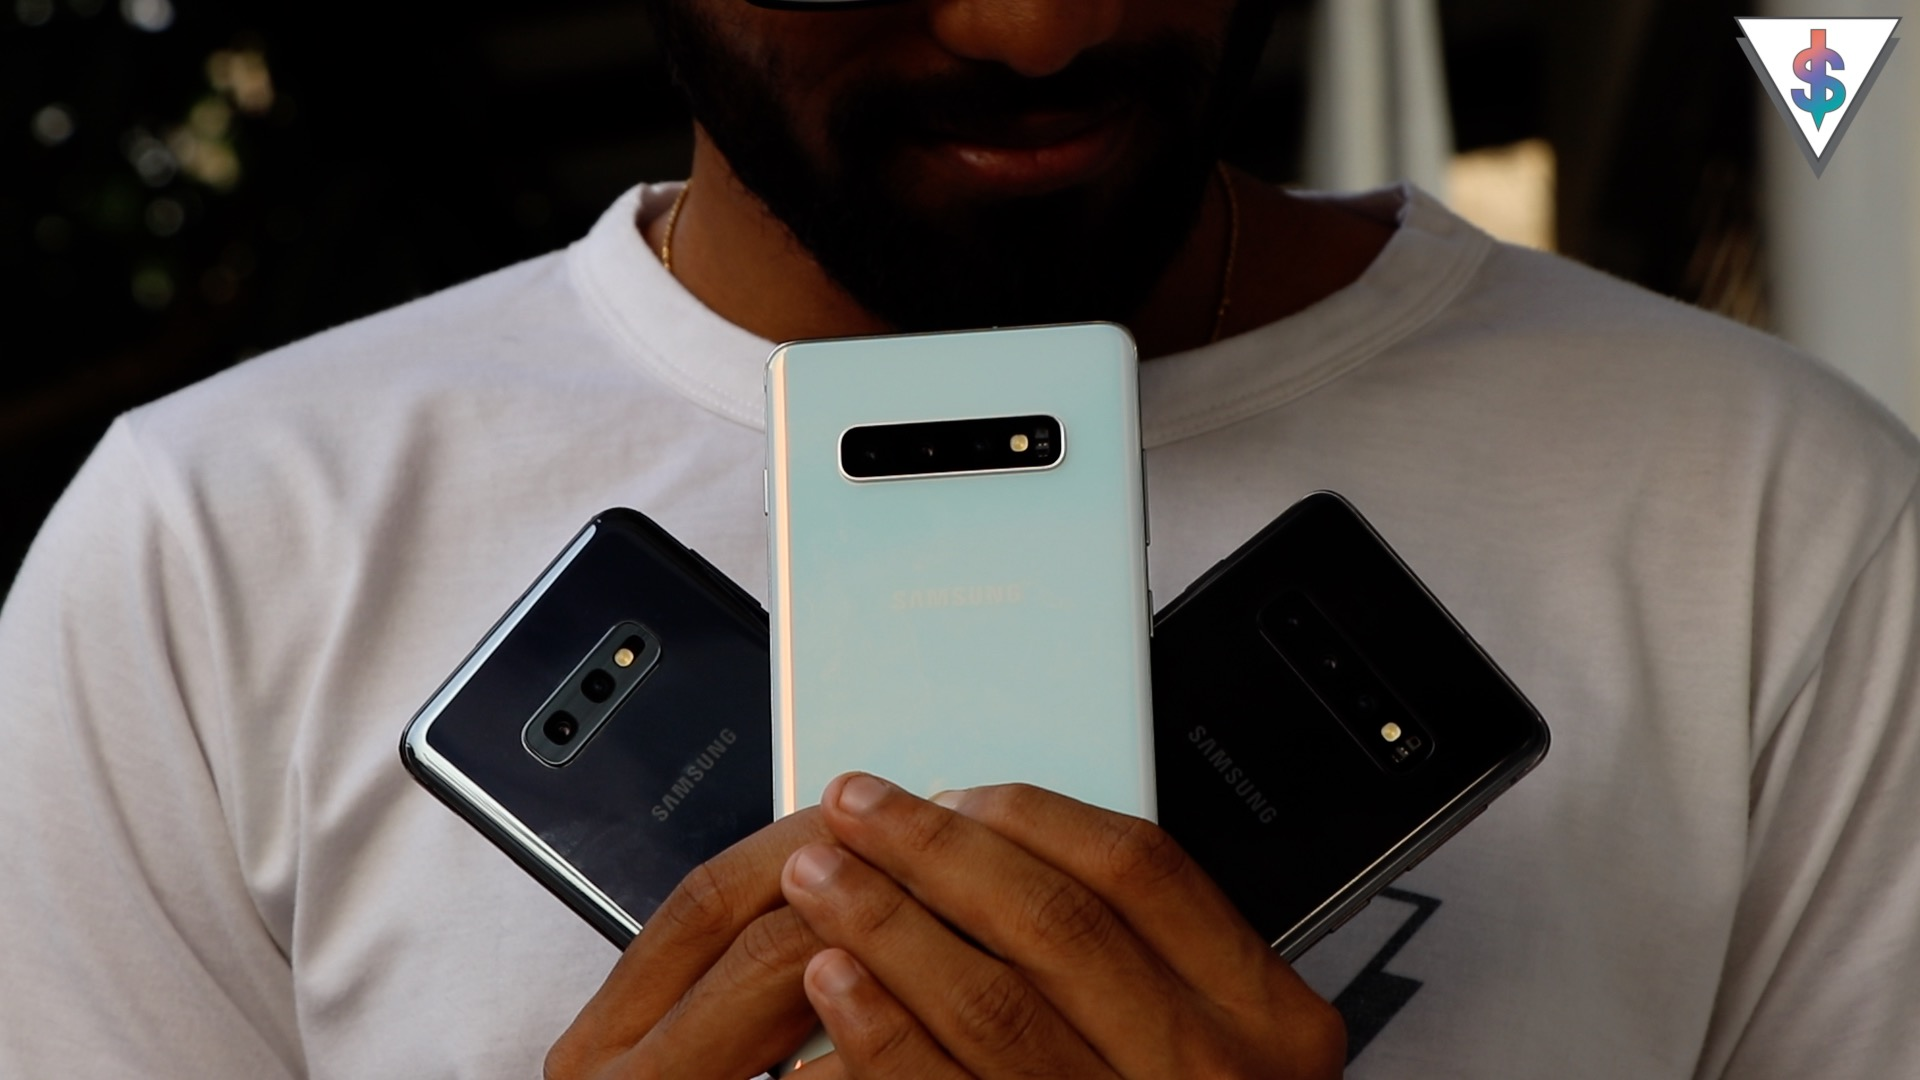 S10 Tips - Best and Most Useful Tips and Tricks for the Samsung Galaxy S10+/S10/S10E (One UI Tips)